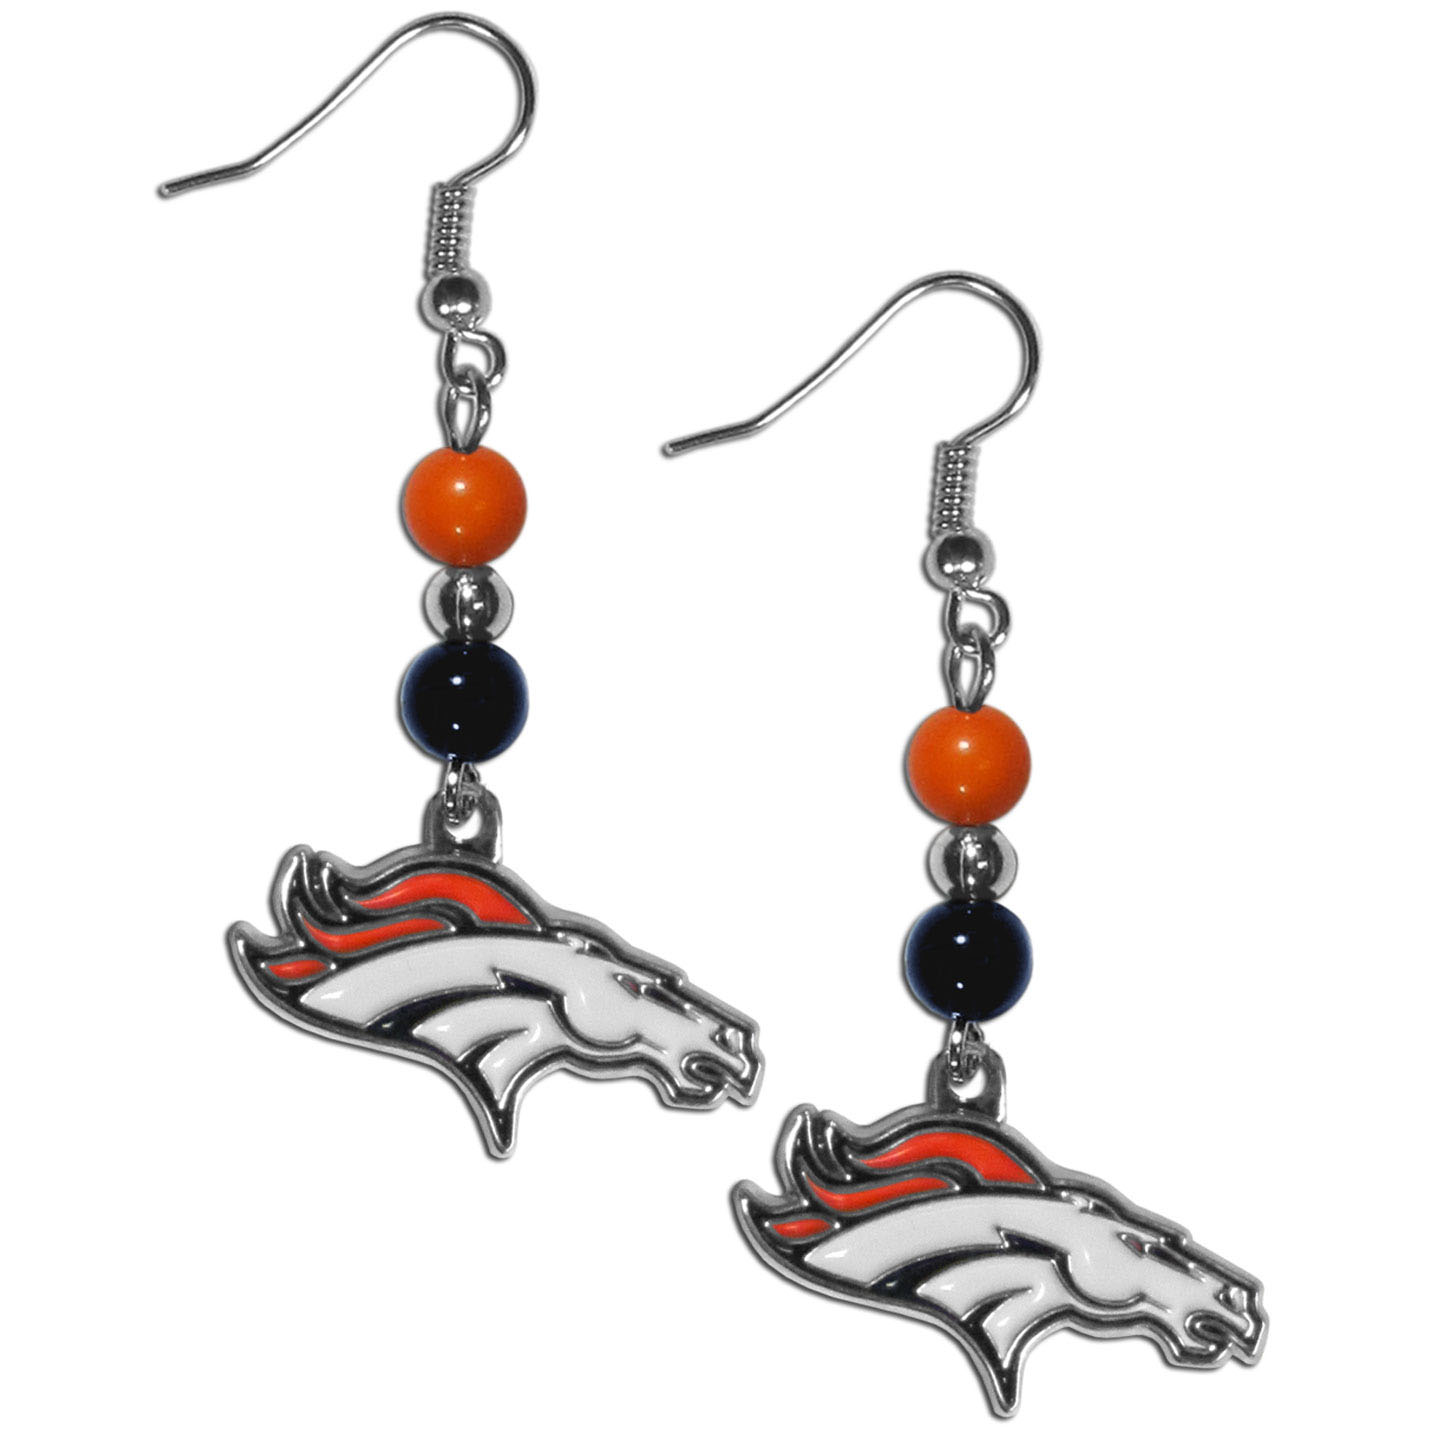 Denver Broncos Fan Bead Dangle Earrings - Love your team, show it off with our Denver Broncos bead dangle earrings! These super cute earrings hang approximately 2 inches and features 2 team colored beads and a high polish team charm. A must have for game day!